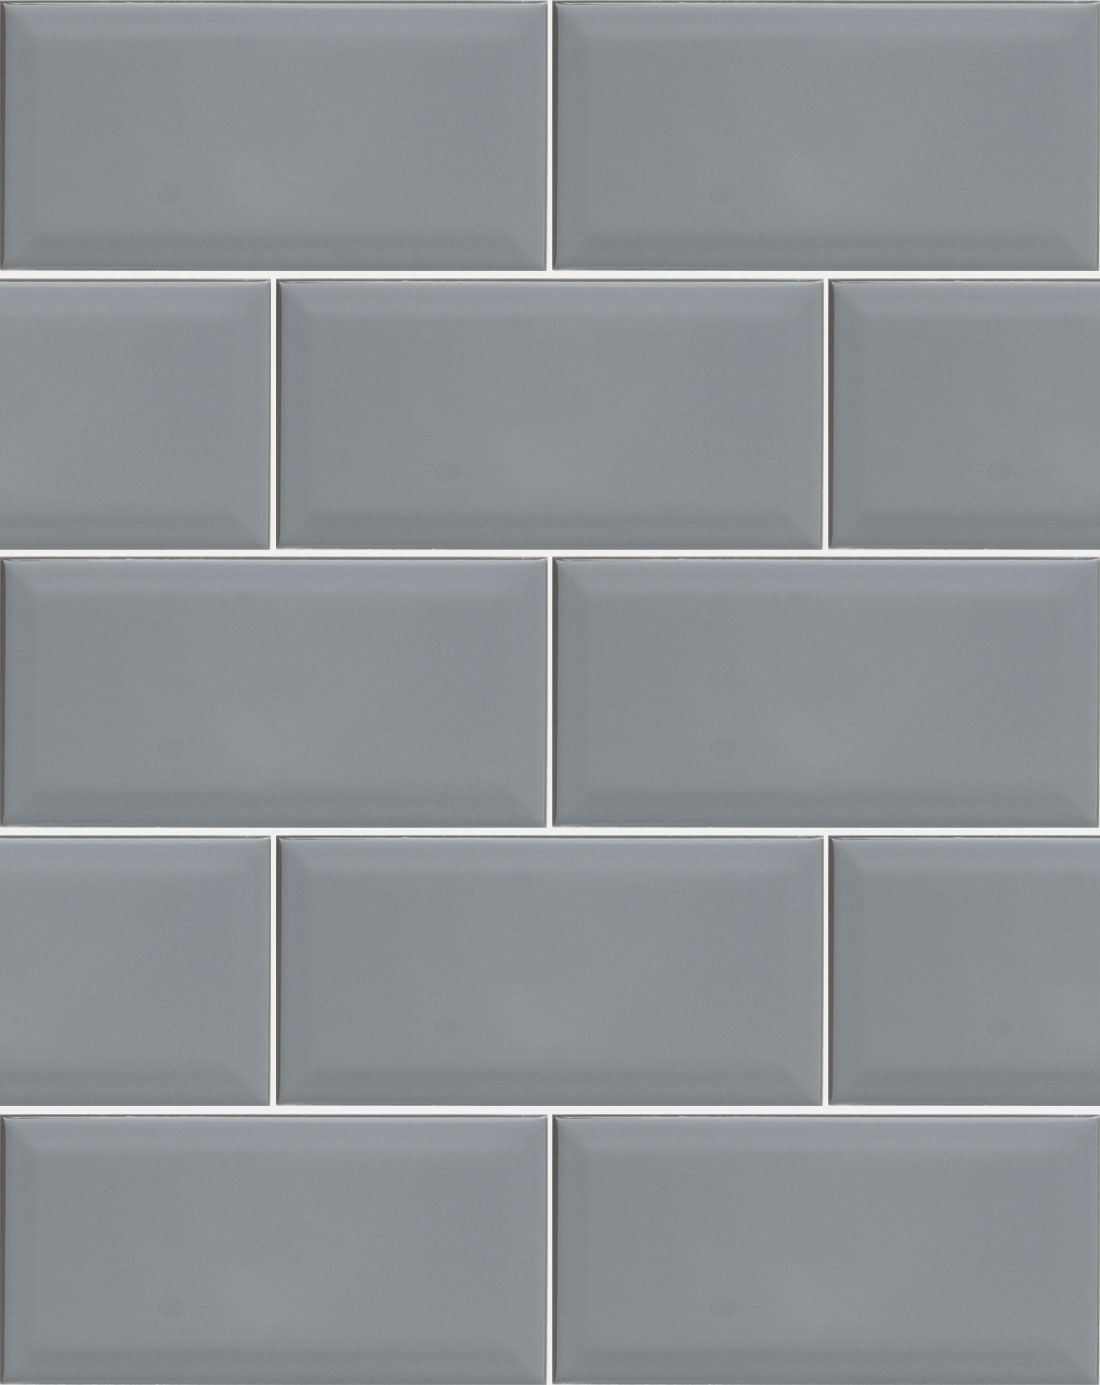 Tile samples for bathroom - Metro Dark Grey Wall Tiles From Our Best Selling Retro Wall Tile Collection Perfect For The